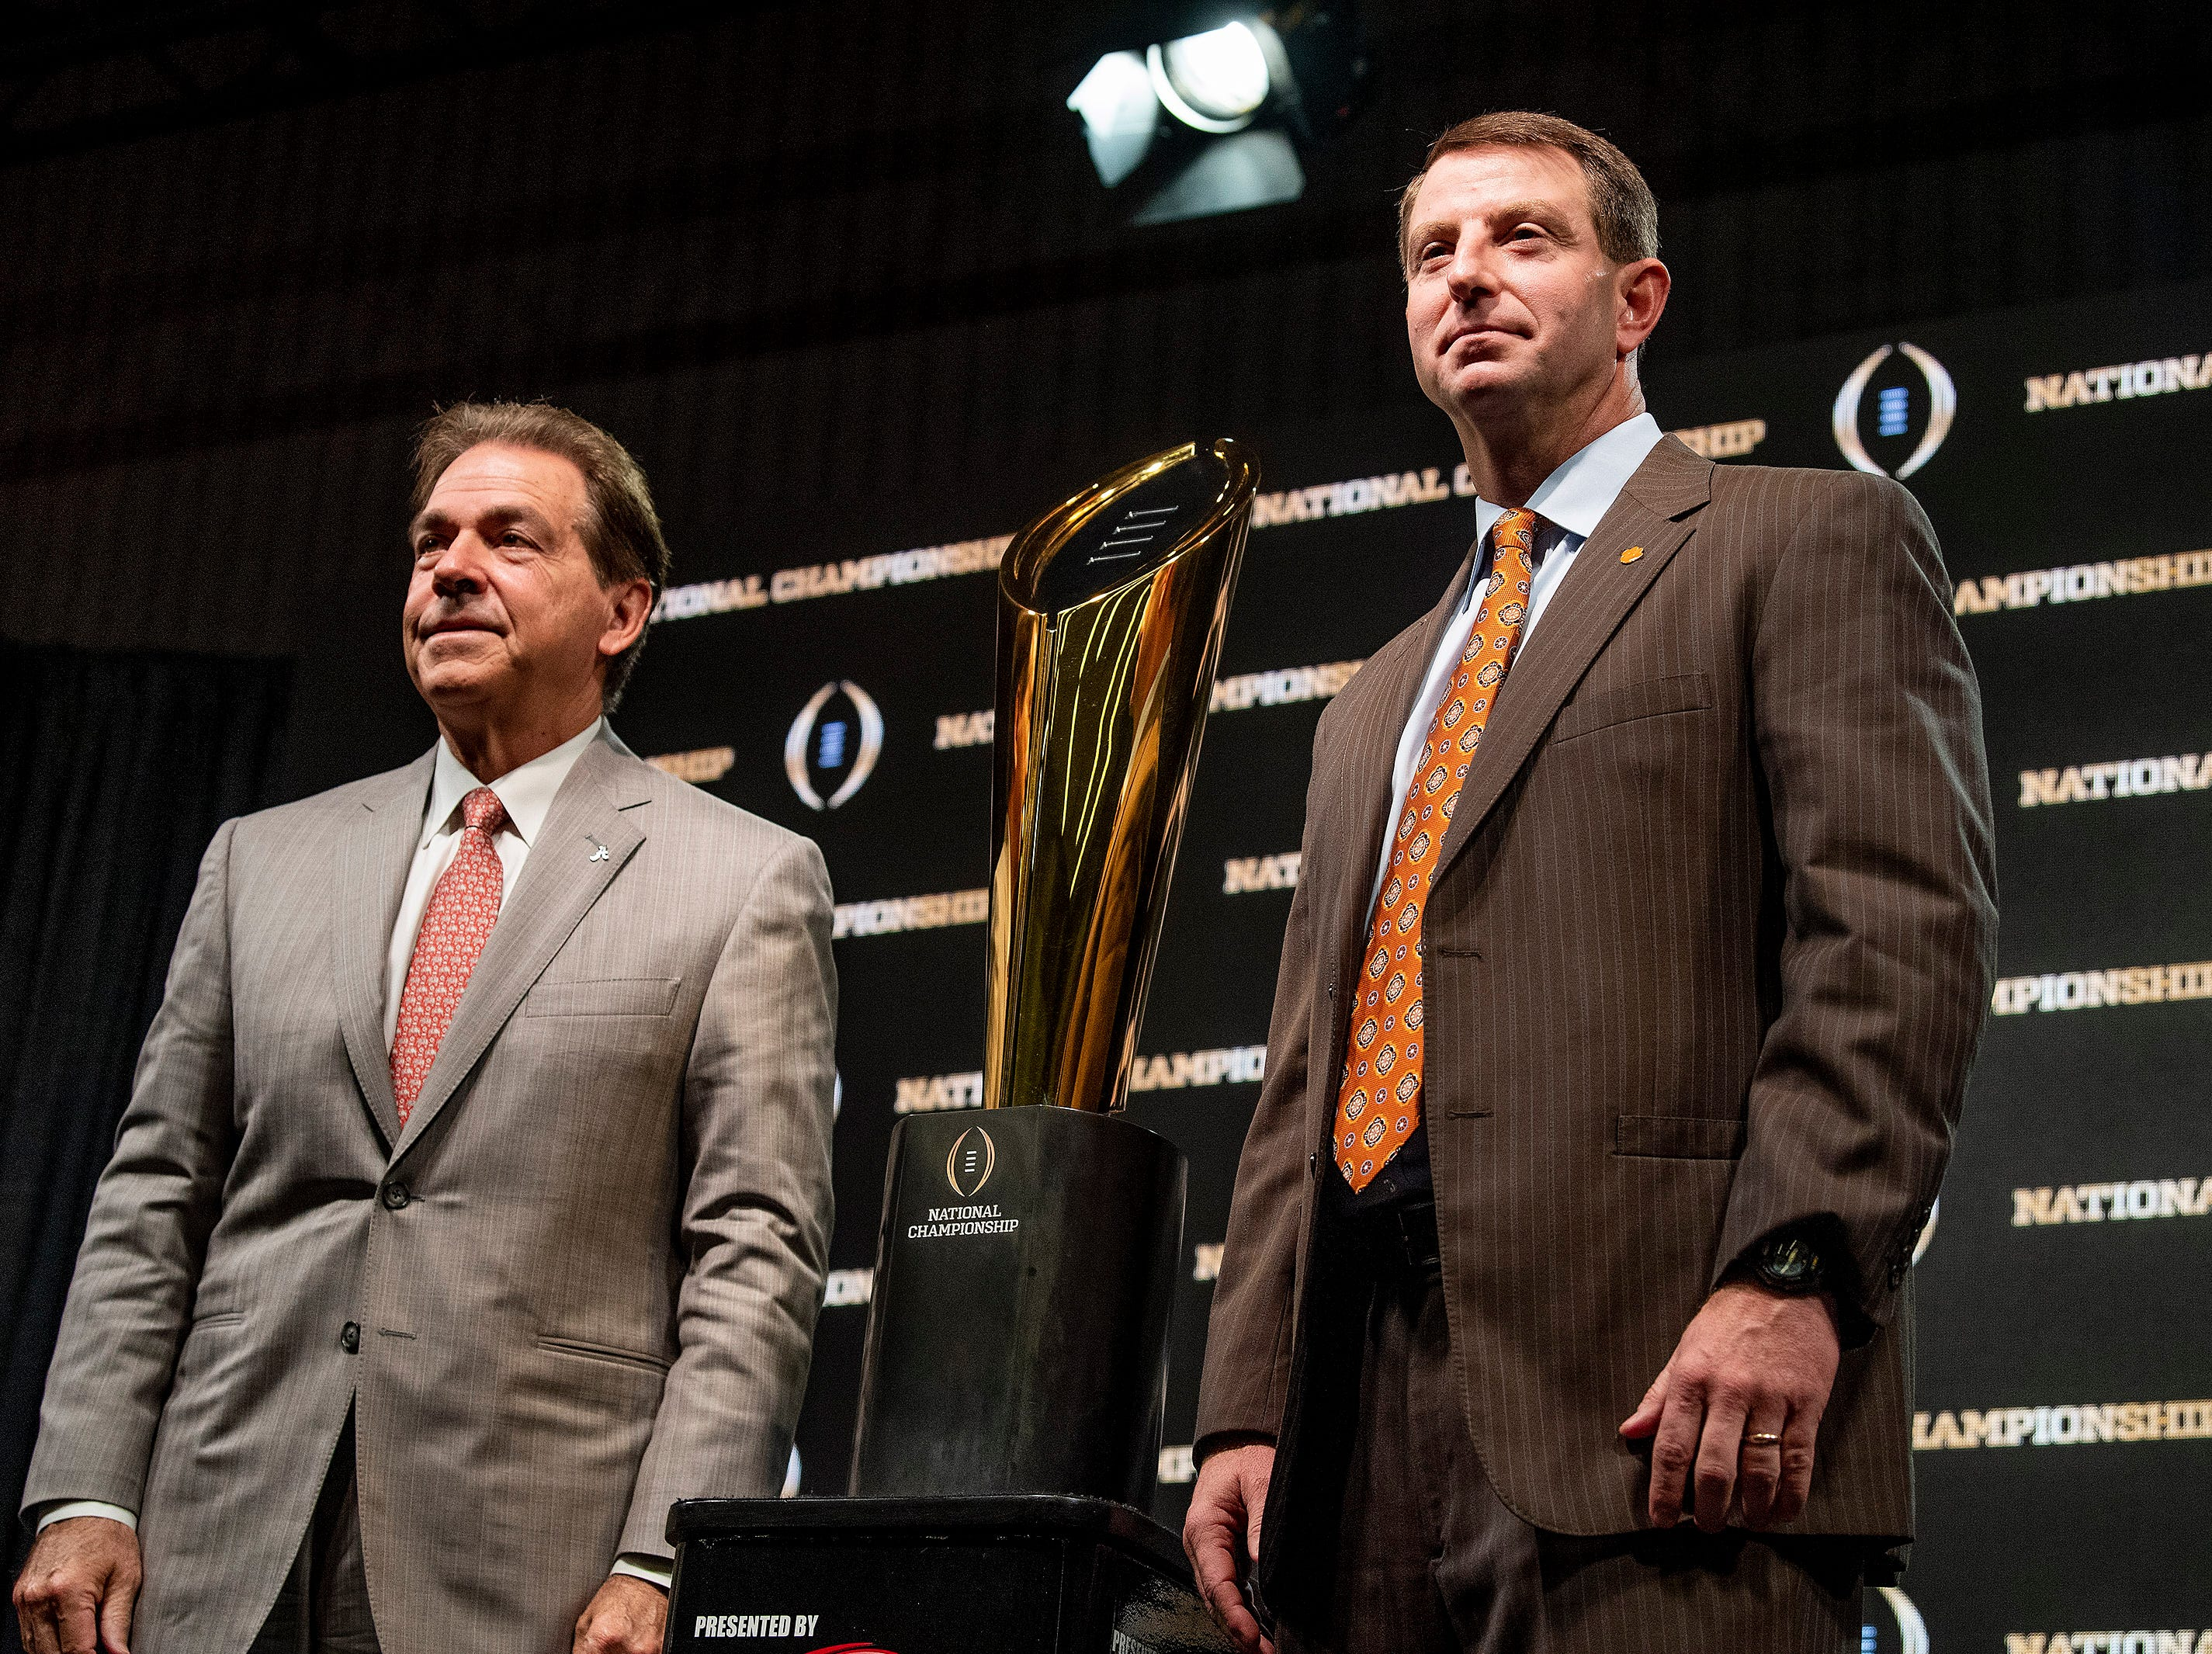 Alabama head coach Nick Saban and Clemson head coach Dabo Swinney pose with the National Championship trophy during the College Football National Championship coaches press conference in San Jose, Ca., on Sunday January 6, 2019.